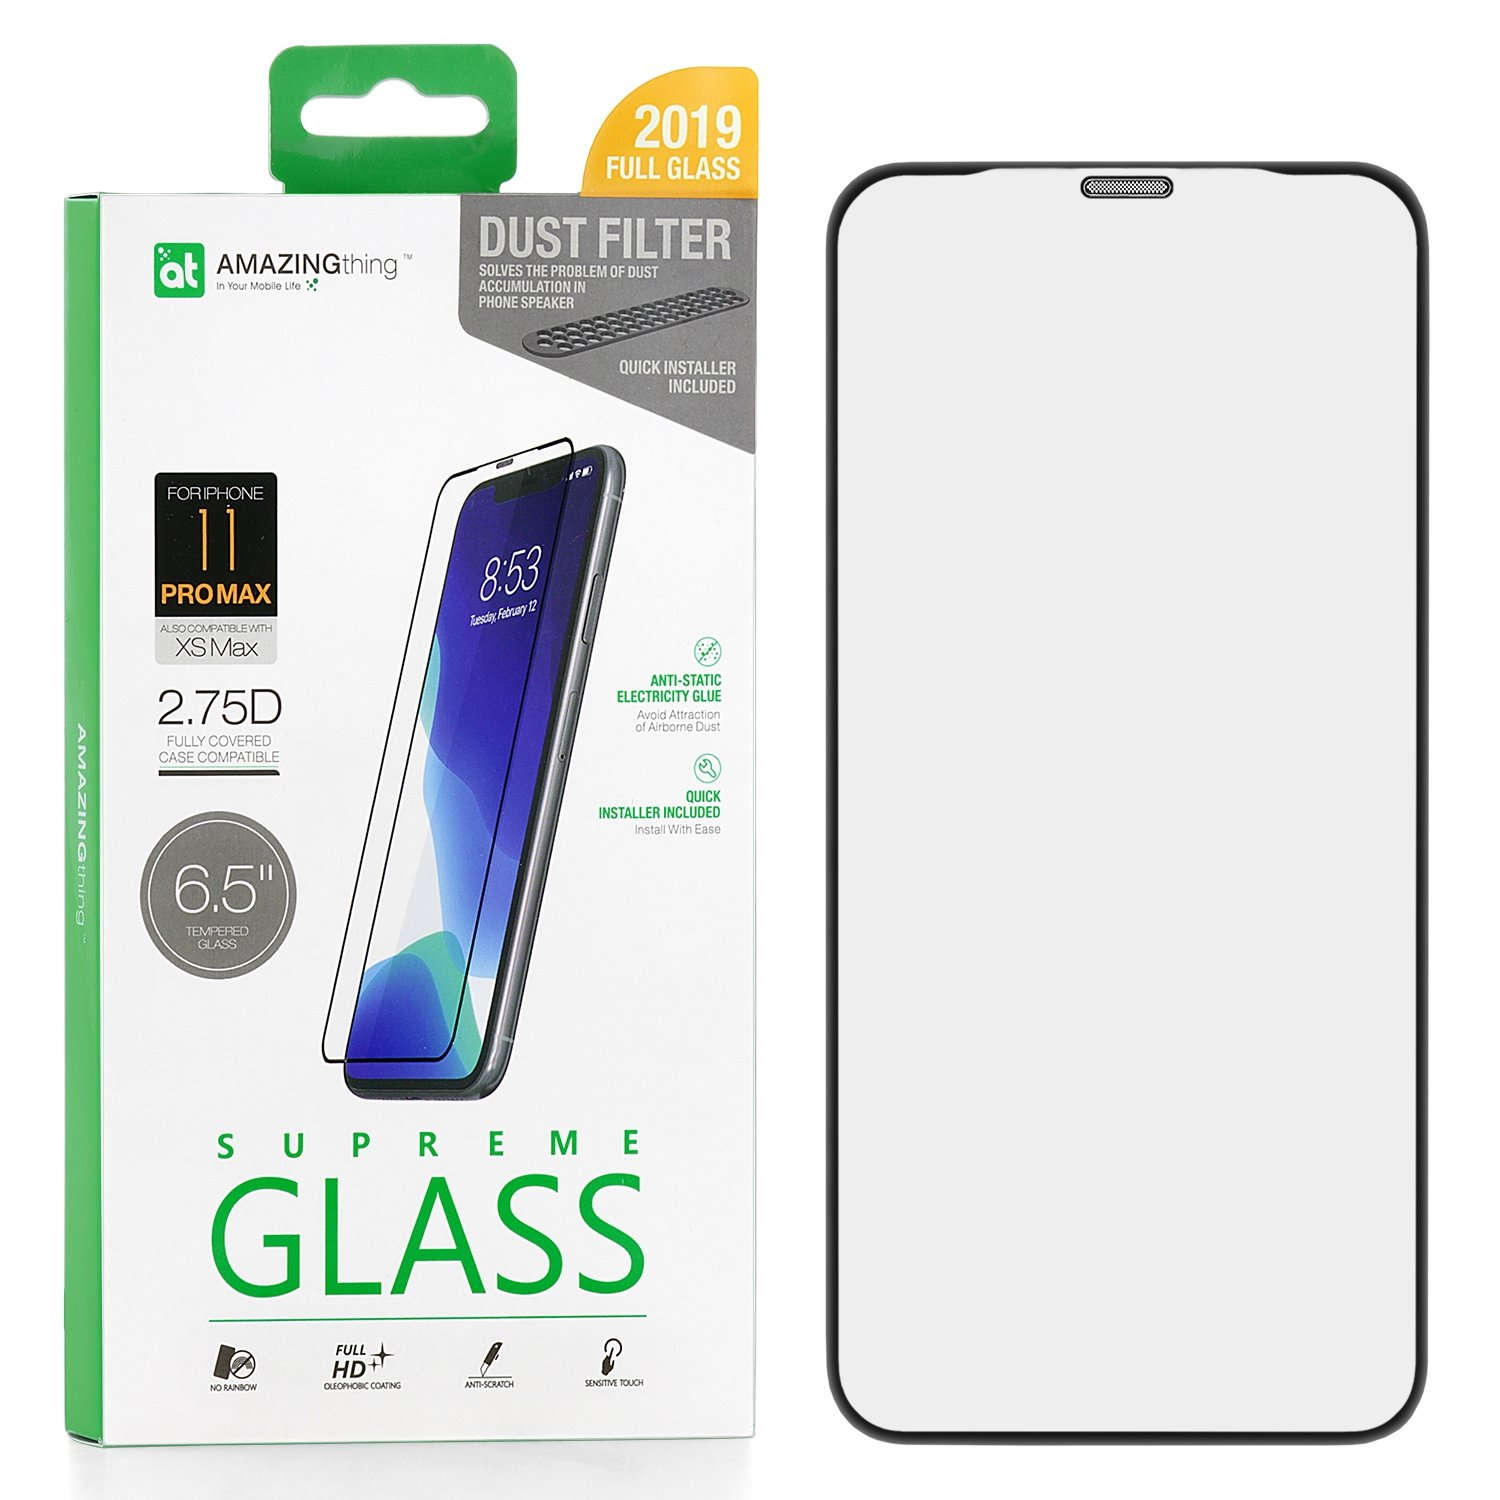 Защитное стекло AMAZINGthing SupremeGlass Dust Filter Black 0.3mm для Apple iPhone XS Max